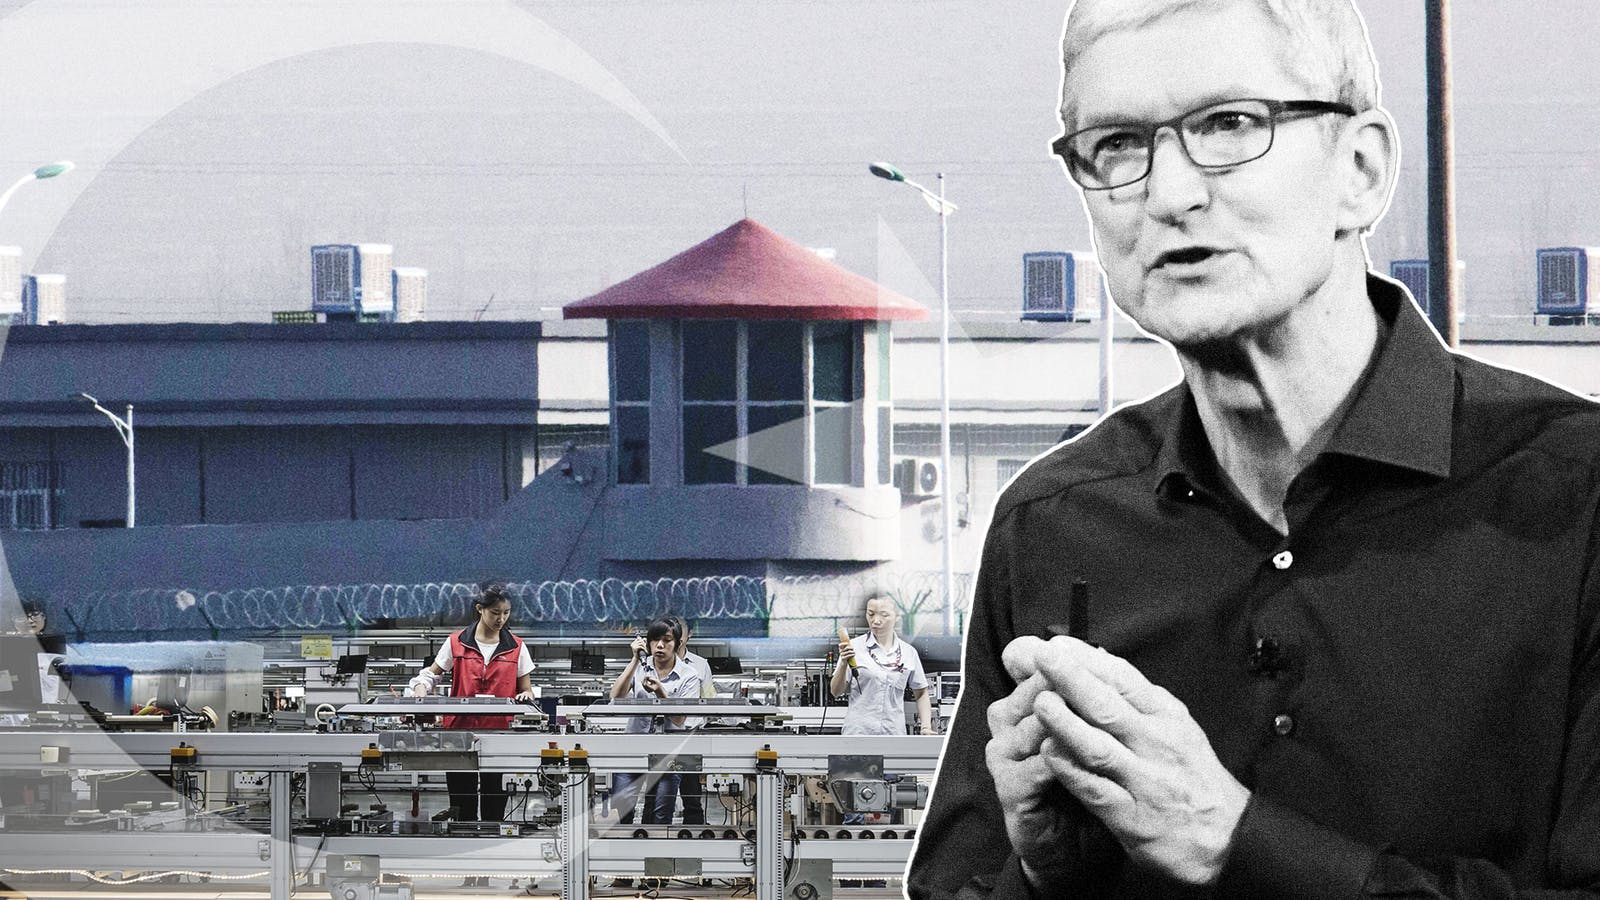 A photo (top left) of a suspected detention center next to Artux Kunshan Industrial Park in Xinjiang, where an Apple supplier operated. Apple CEO Tim Cook (right). Photos by AP; Bloomberg. Collage by Mike Sullivan